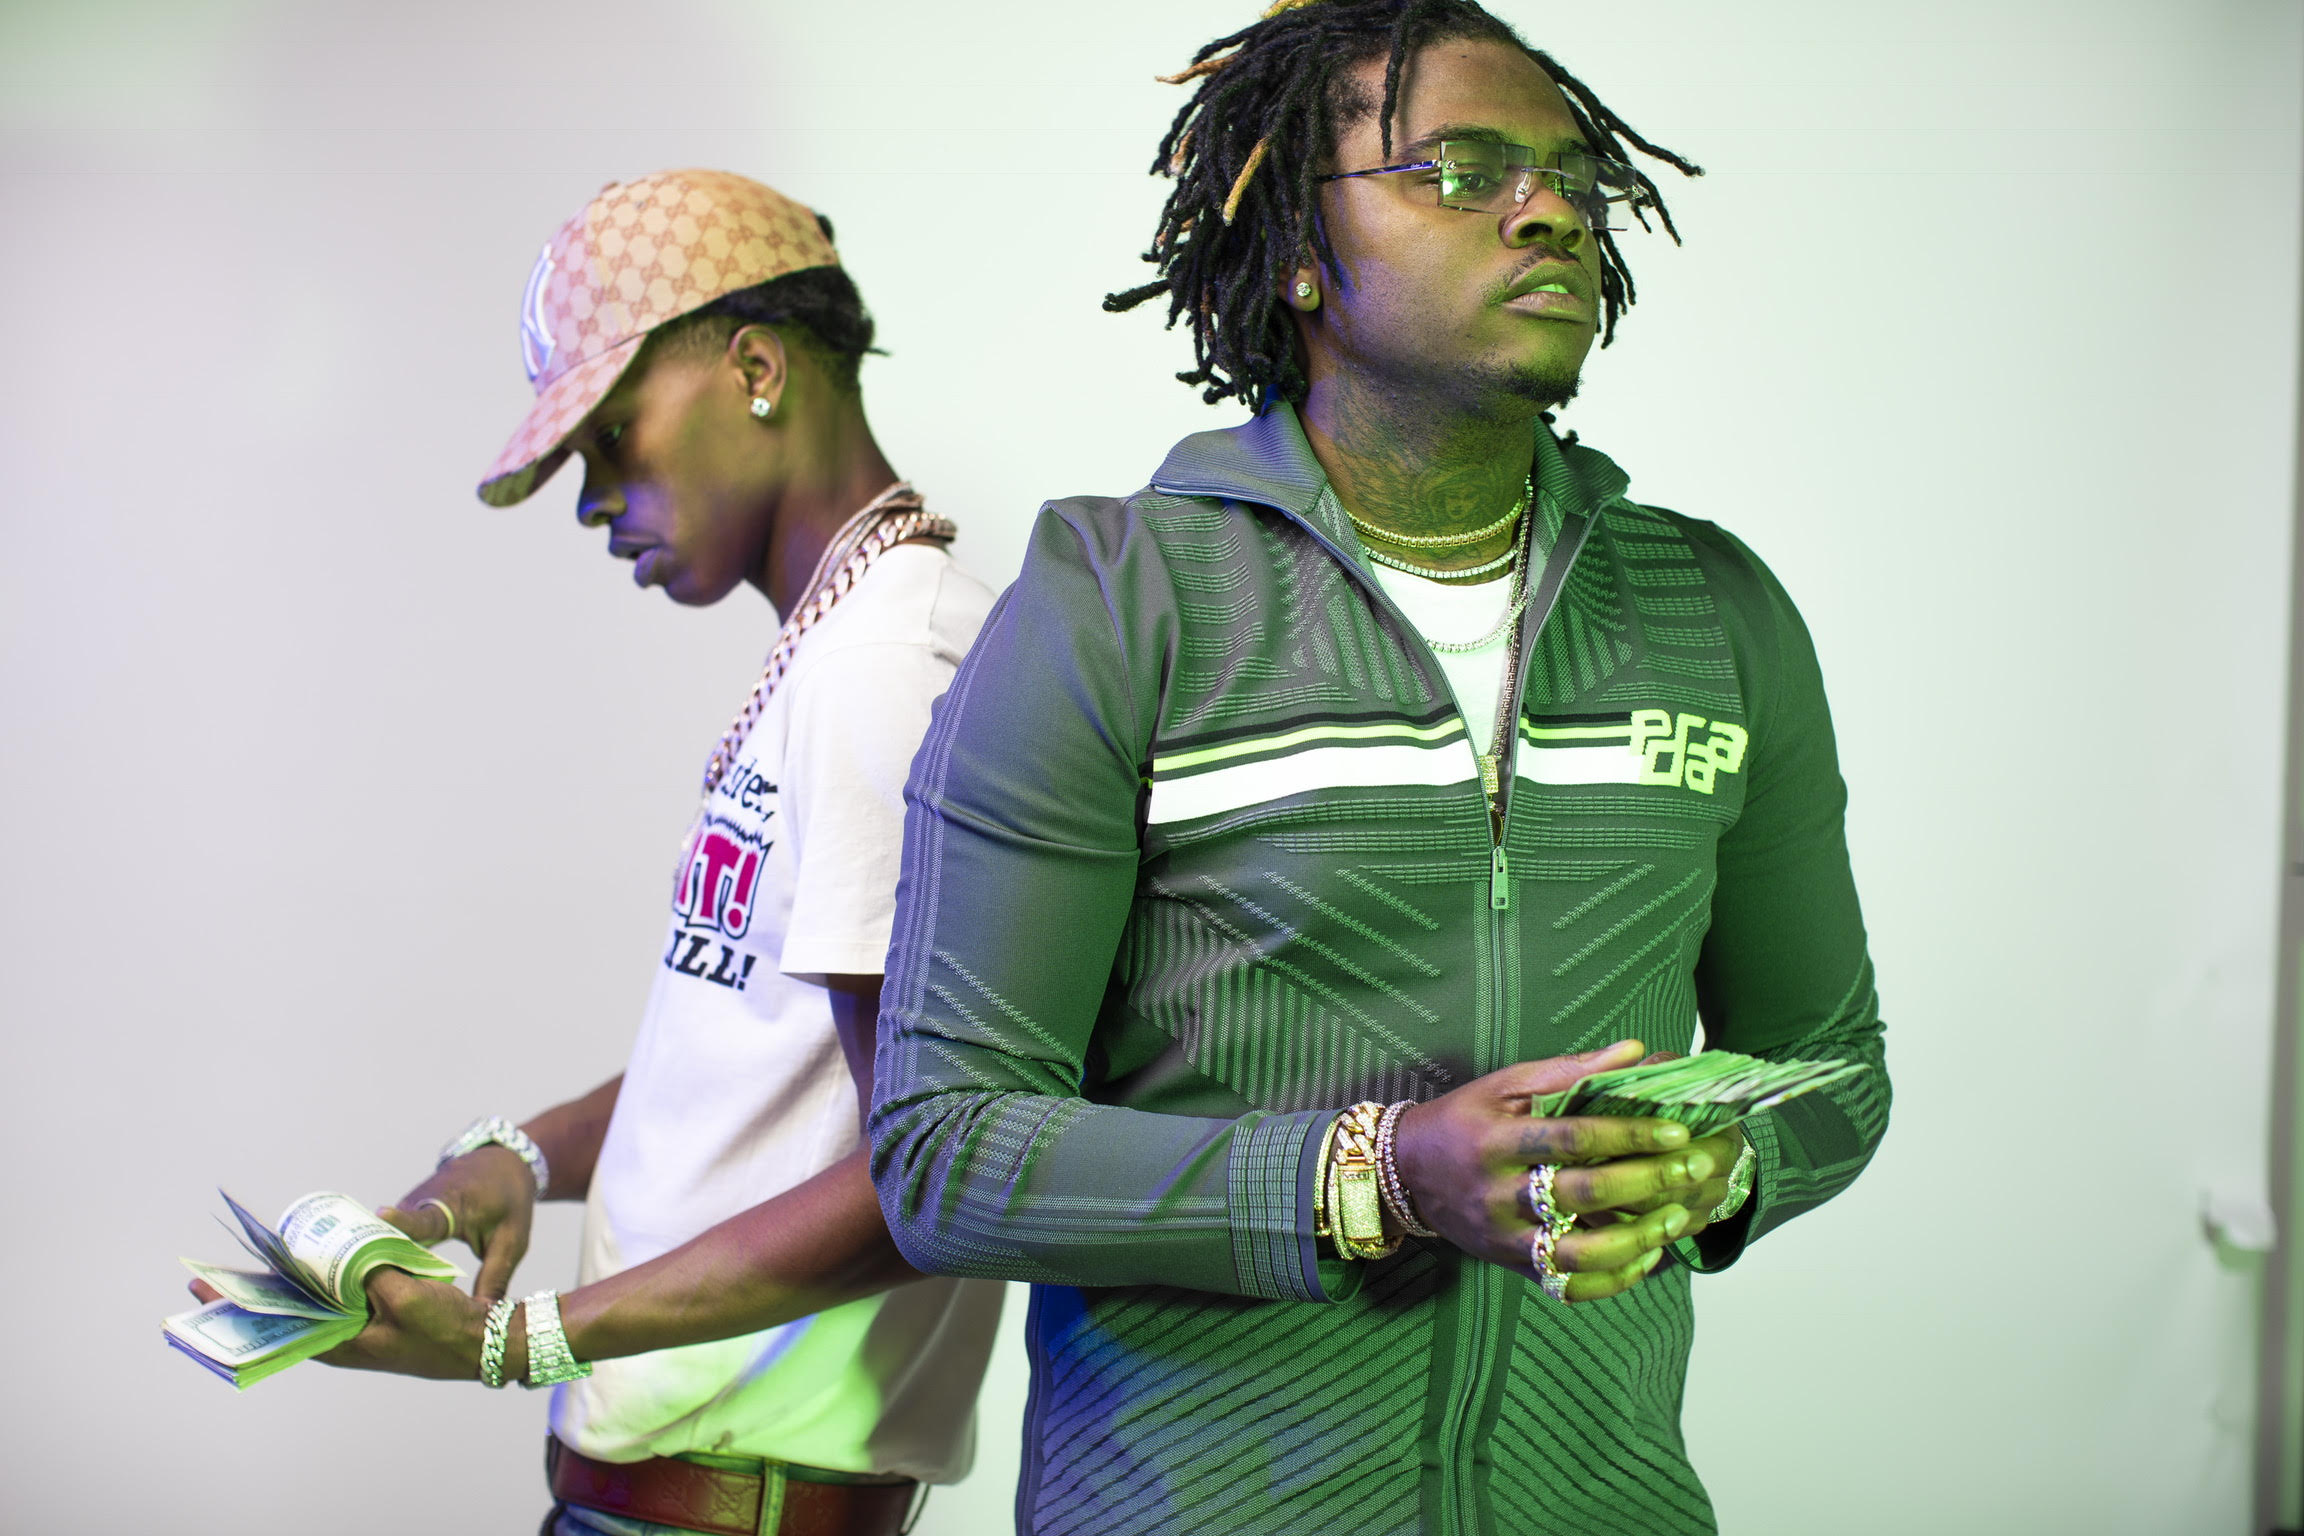 Gunna Taught Lil Baby How To Rap Now They Re The Best Duo Of 2018